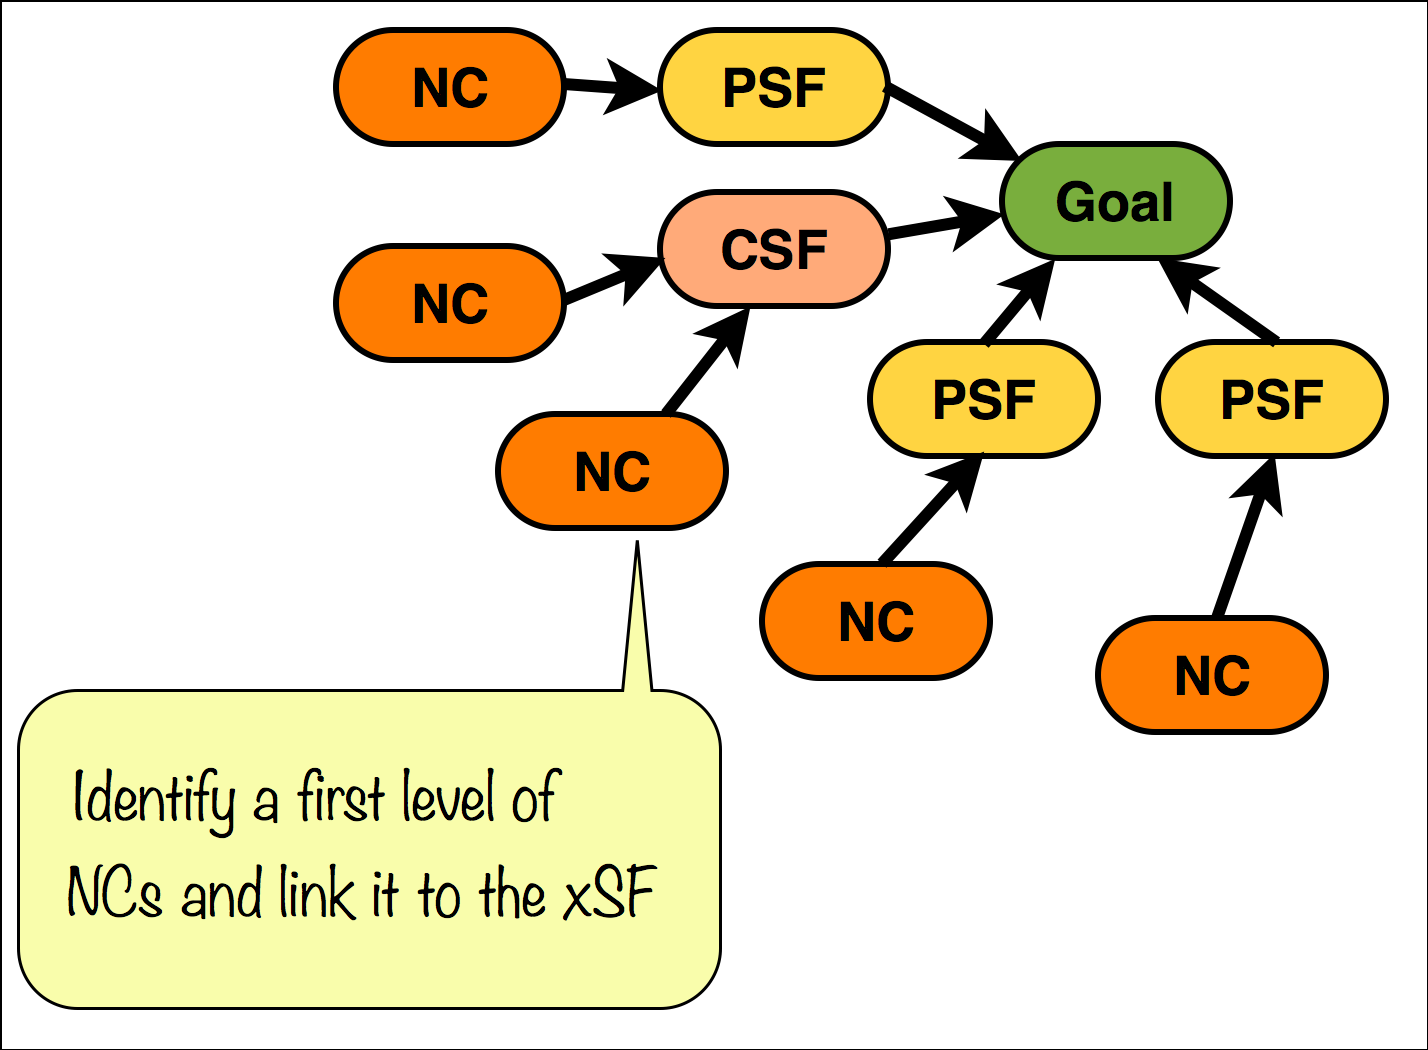 Identify a first level of NCs and link it to the xSF